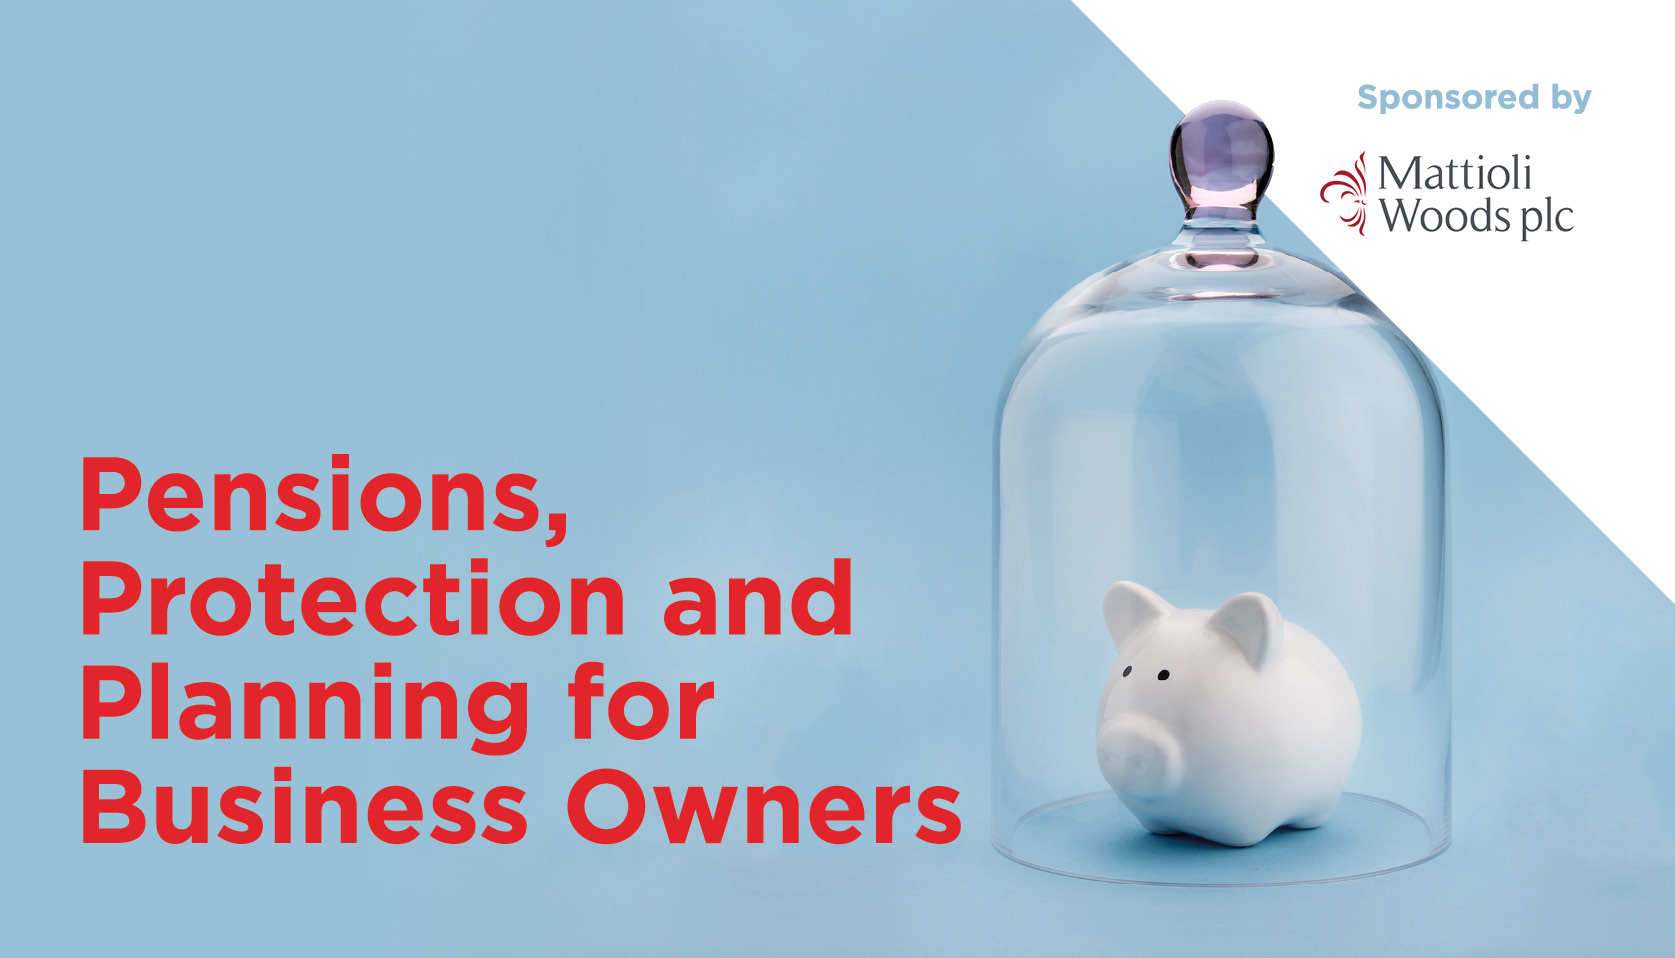 Pensions, Protection and Planning for Business Owners